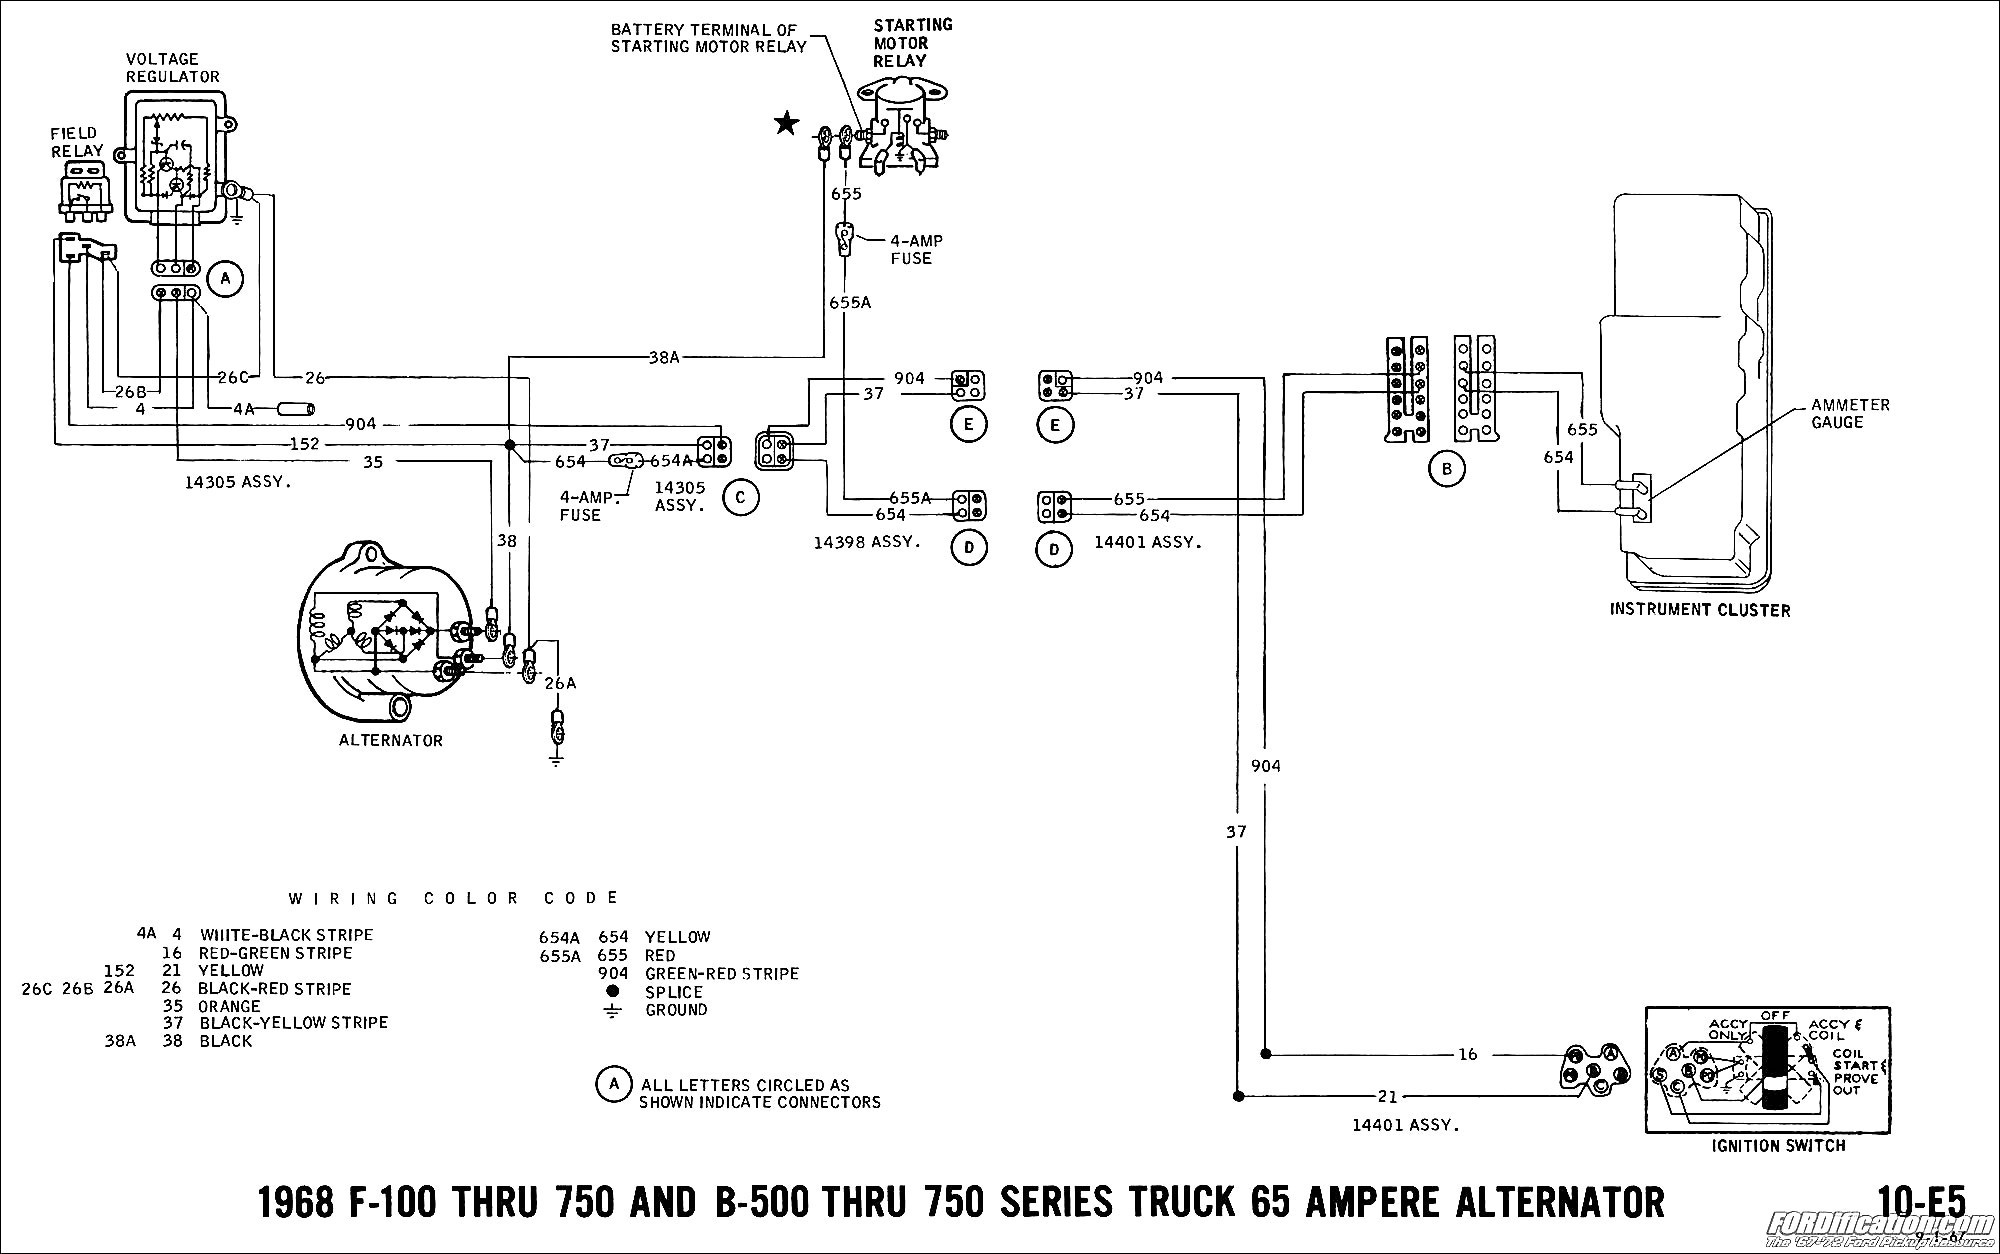 77 mgb wiring diagram oliver 77 tractor wiring diagram oliver 77 wiring diagram - wiring diagram and schematics #12